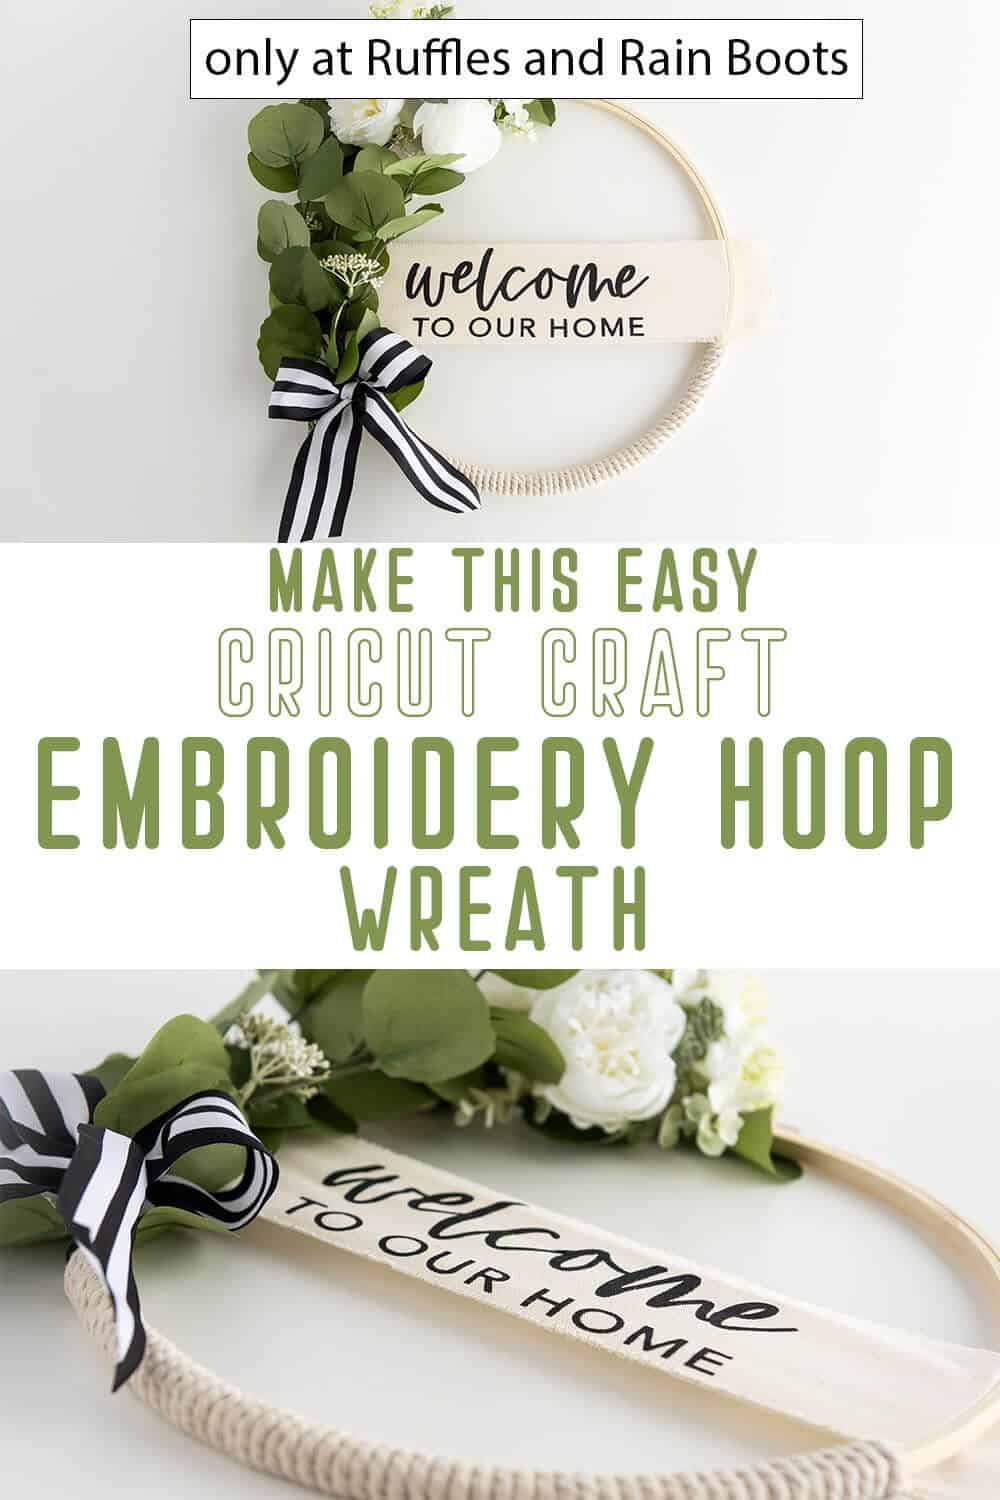 photo collage of diy cricut wreath craft with an embroidery hoop with text which reads make this easy cricut craft embroidery hoop wreath